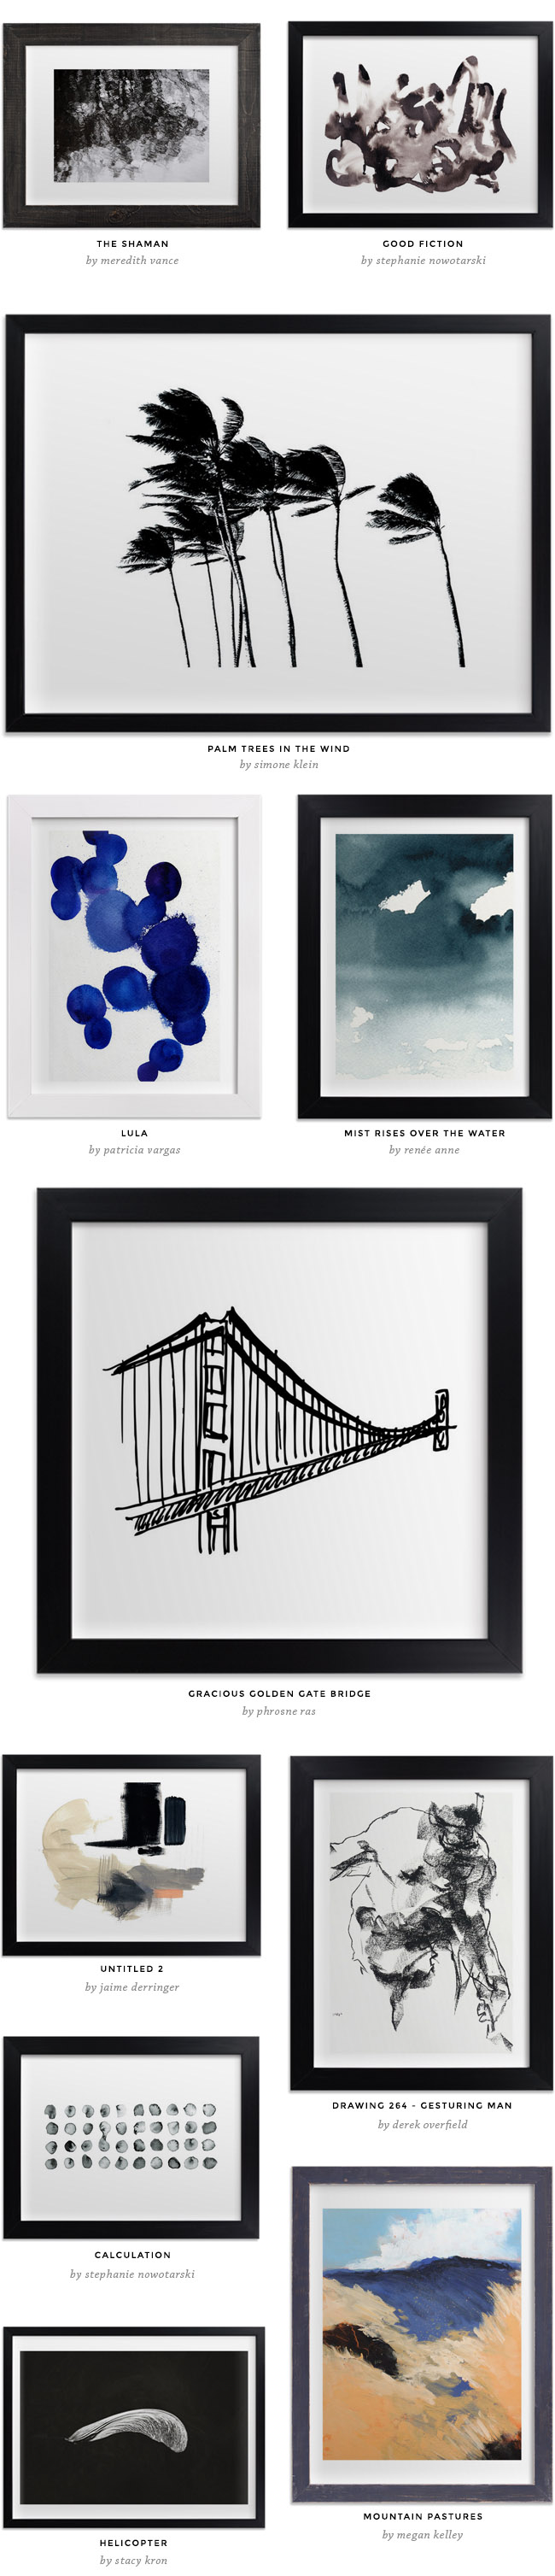 minted art marketplace - great resource for affordable art and frames